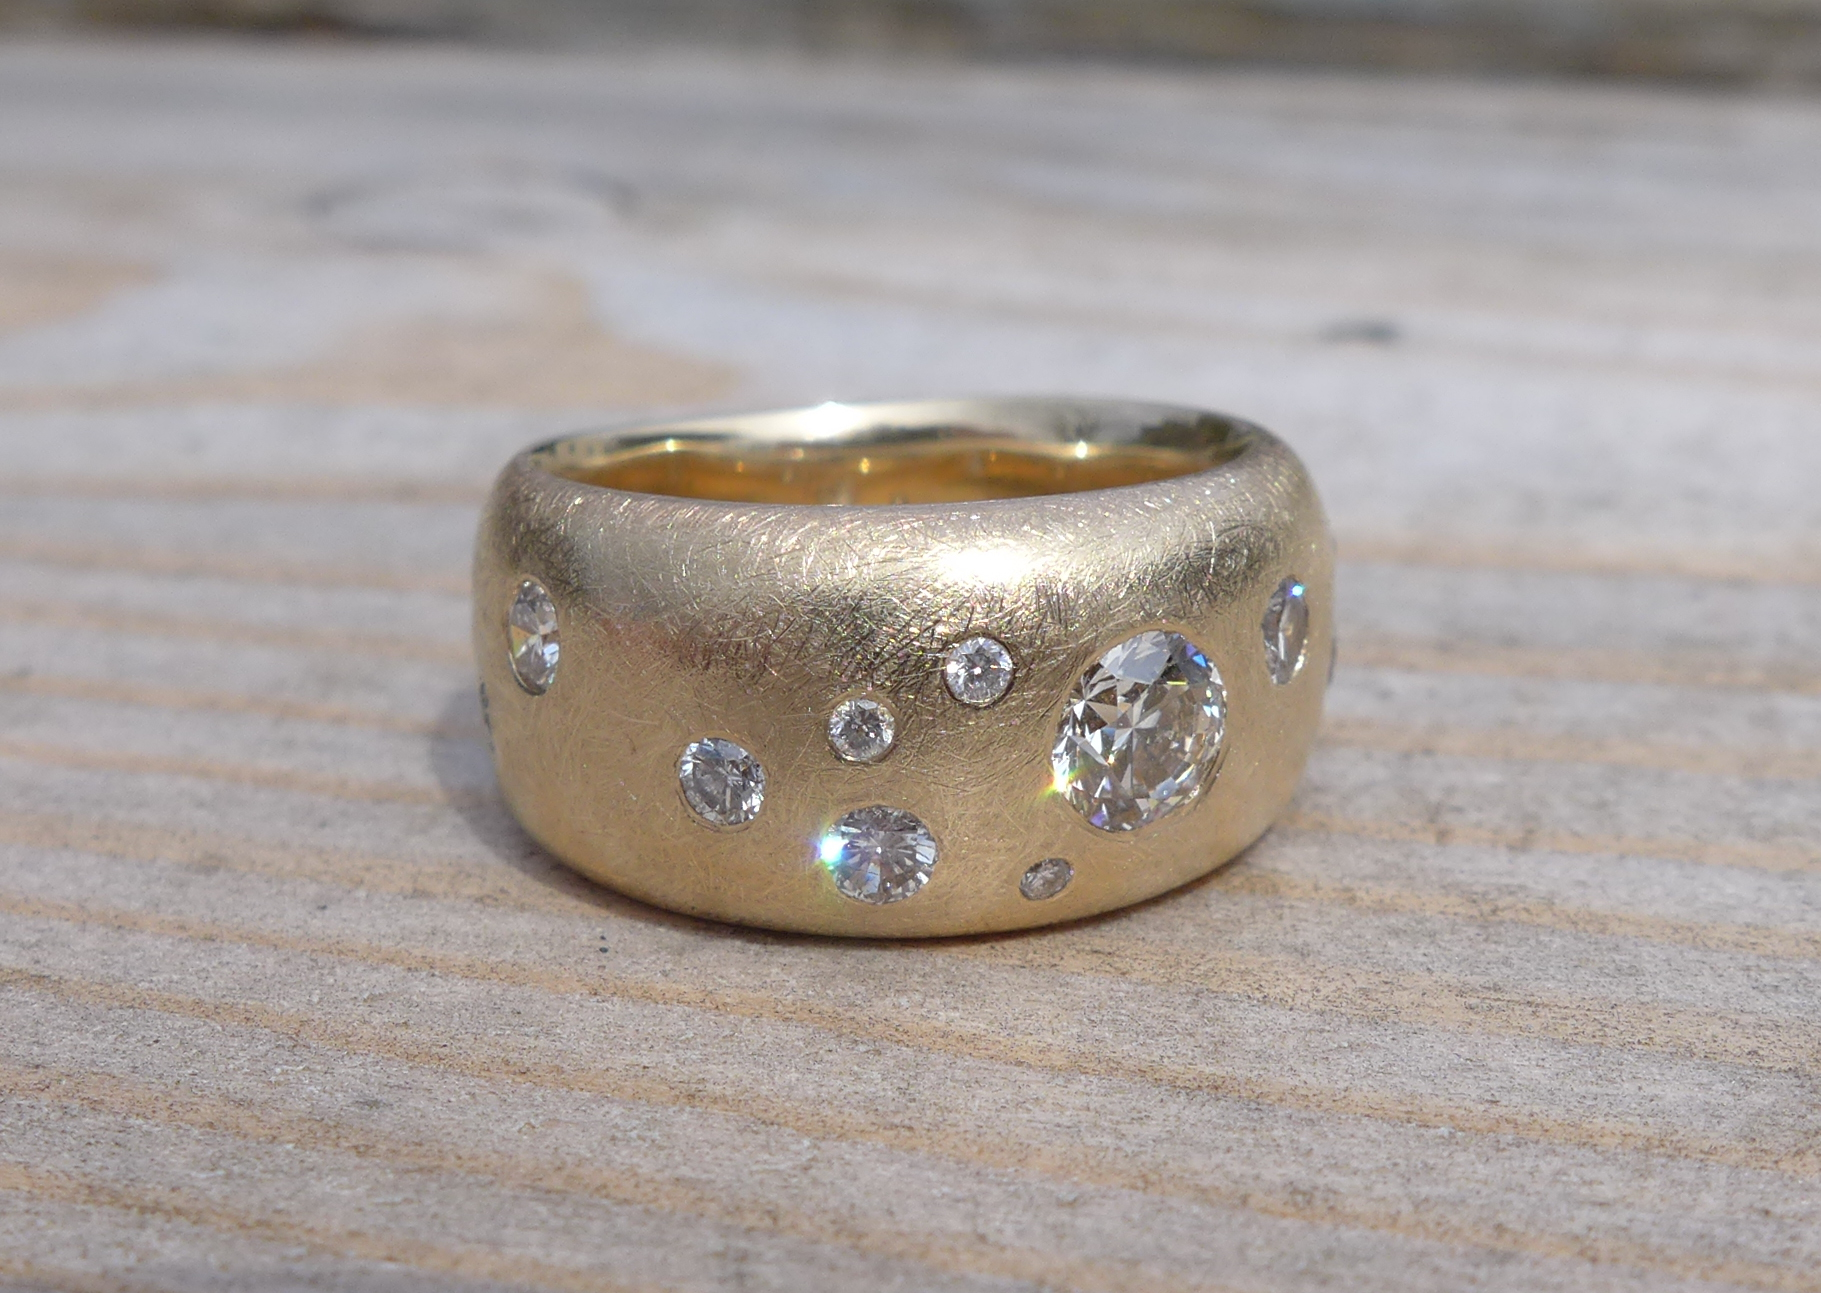 Wedding band, 14k yellow gold, diamonds